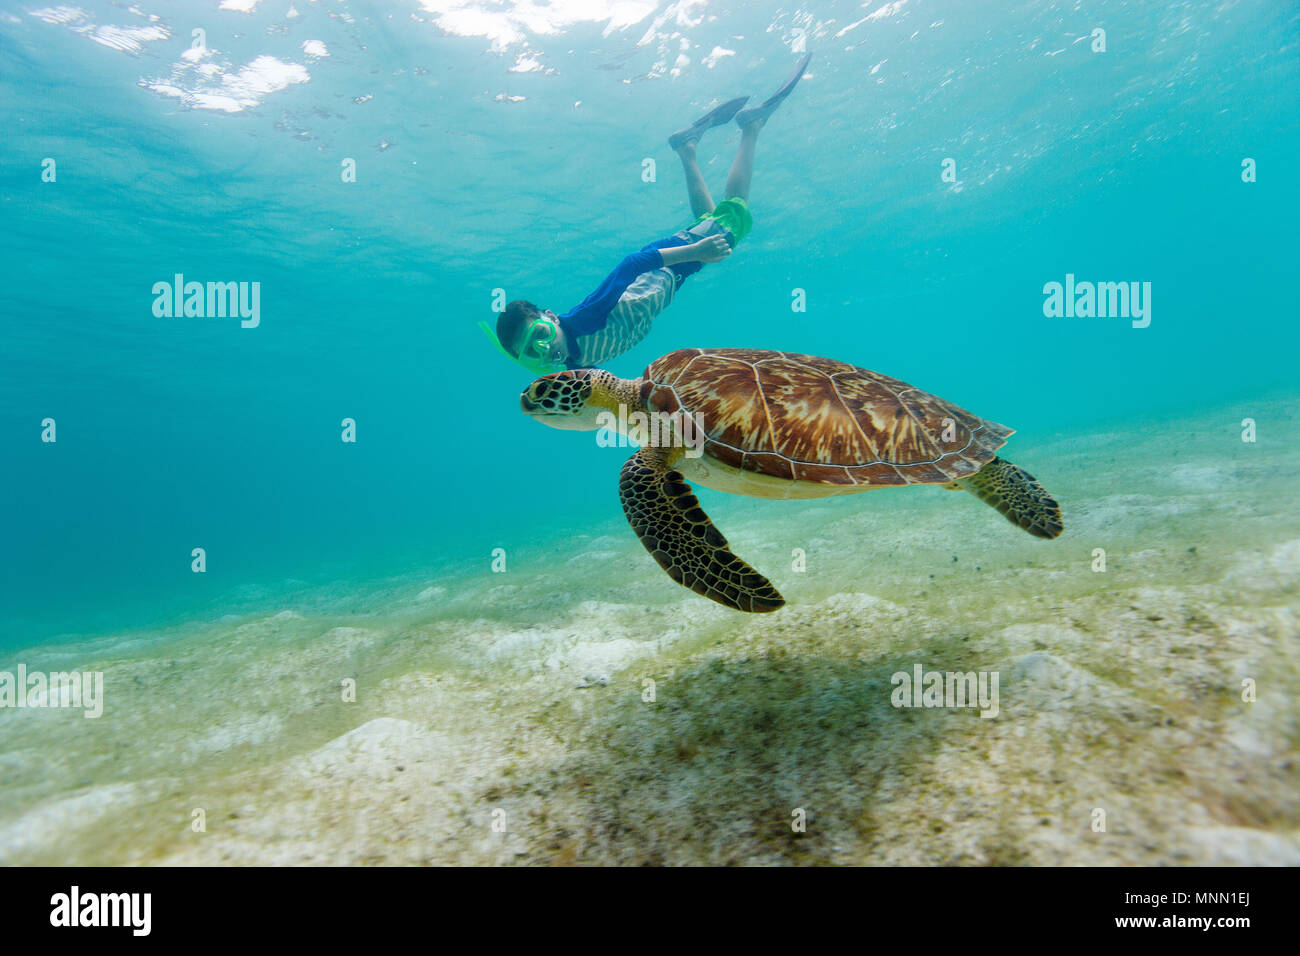 Underwater photo of boy snorkeling and swimming with Hawksbill sea turtle - Stock Image